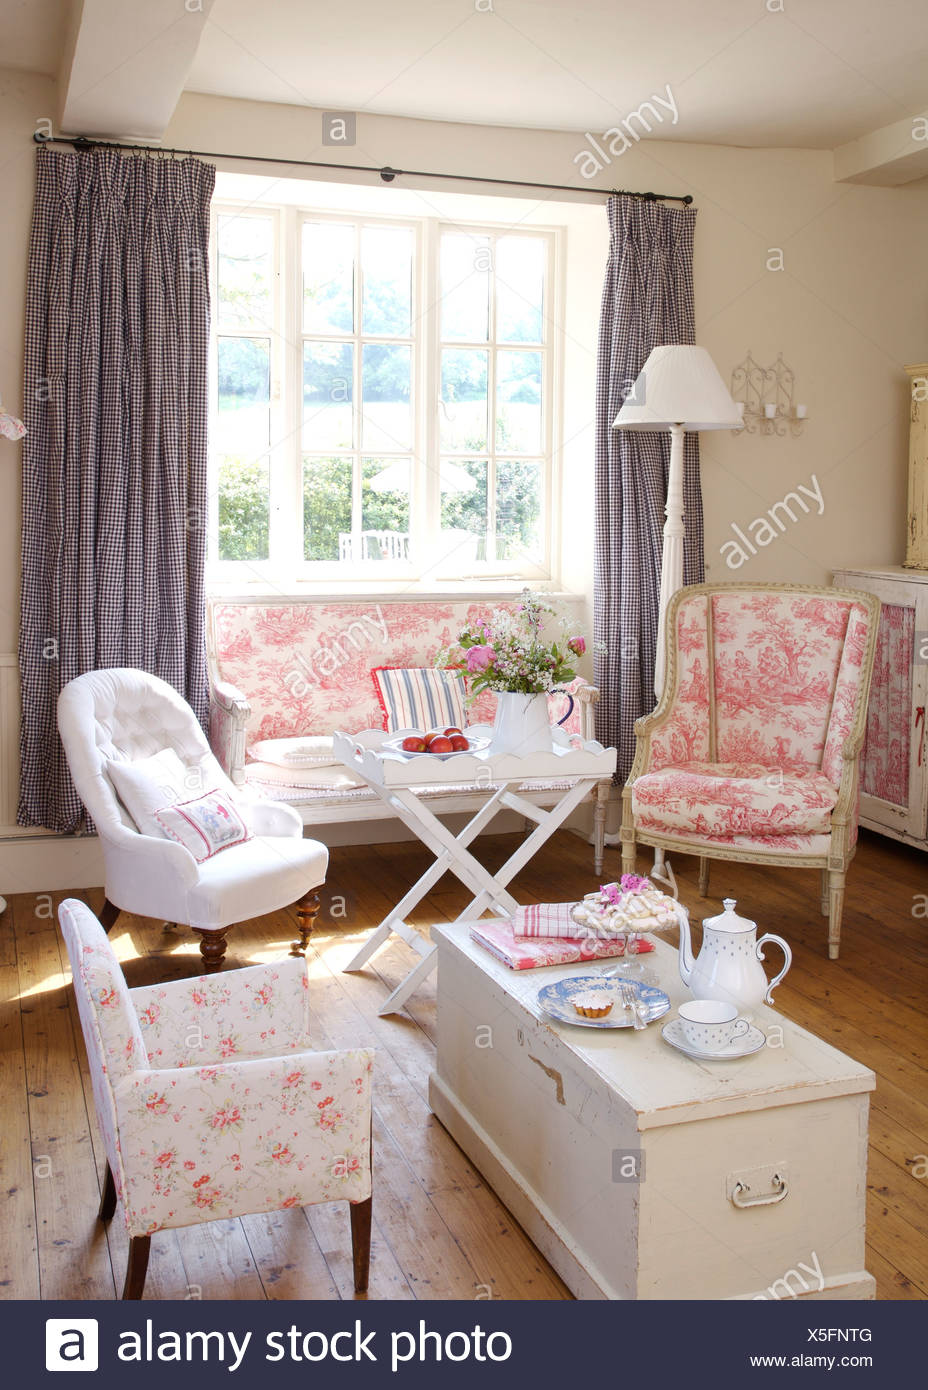 Pink Toile De Joule Chair And Small Sofa In Cottage Living Room With White  Armchair And White Painted Chest